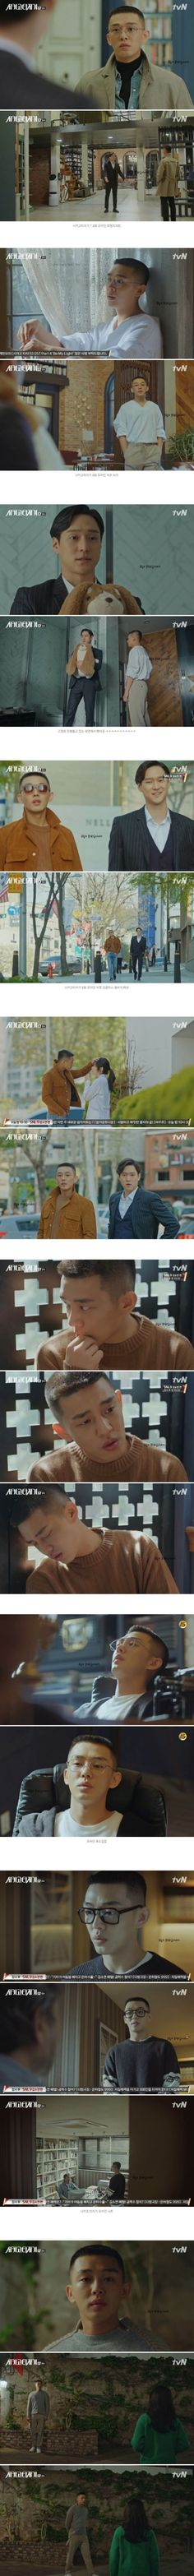 Added episodes 7 and 8 captures for the Korean drama 'Chicago Typewriter'.